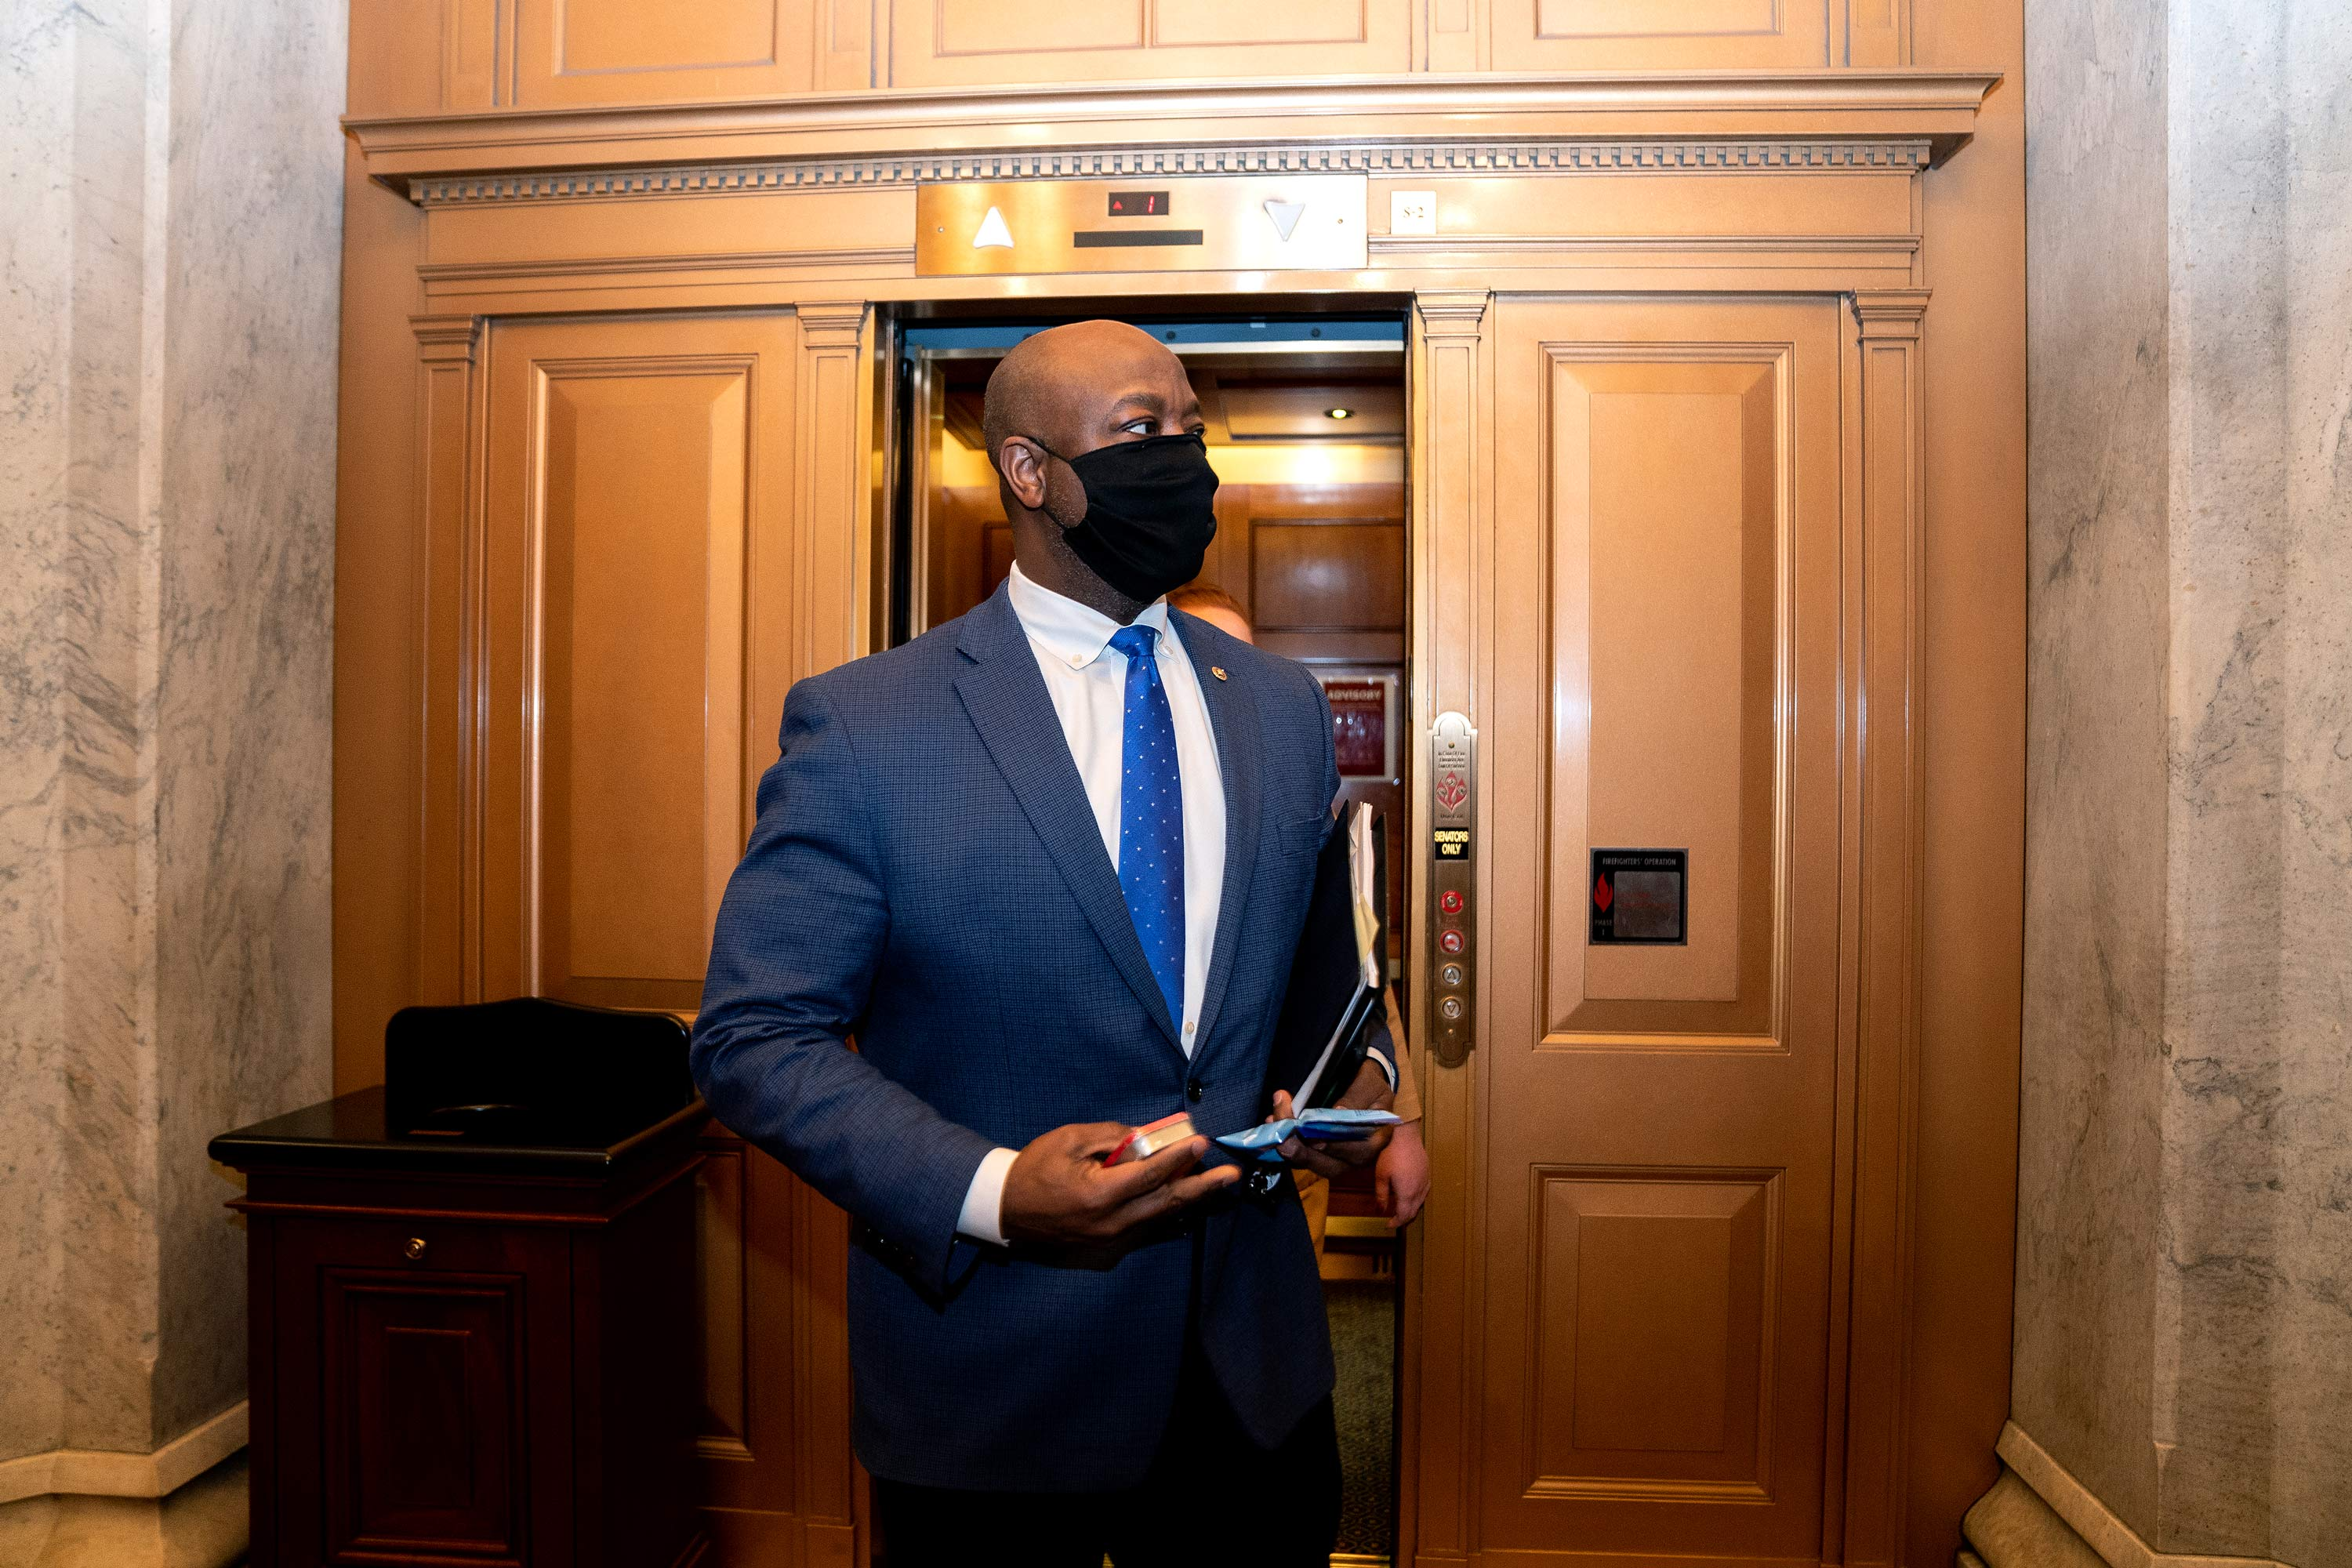 Sen. Tim Scott departs the U.S. Capitol on February 13 in Washington, D.C.